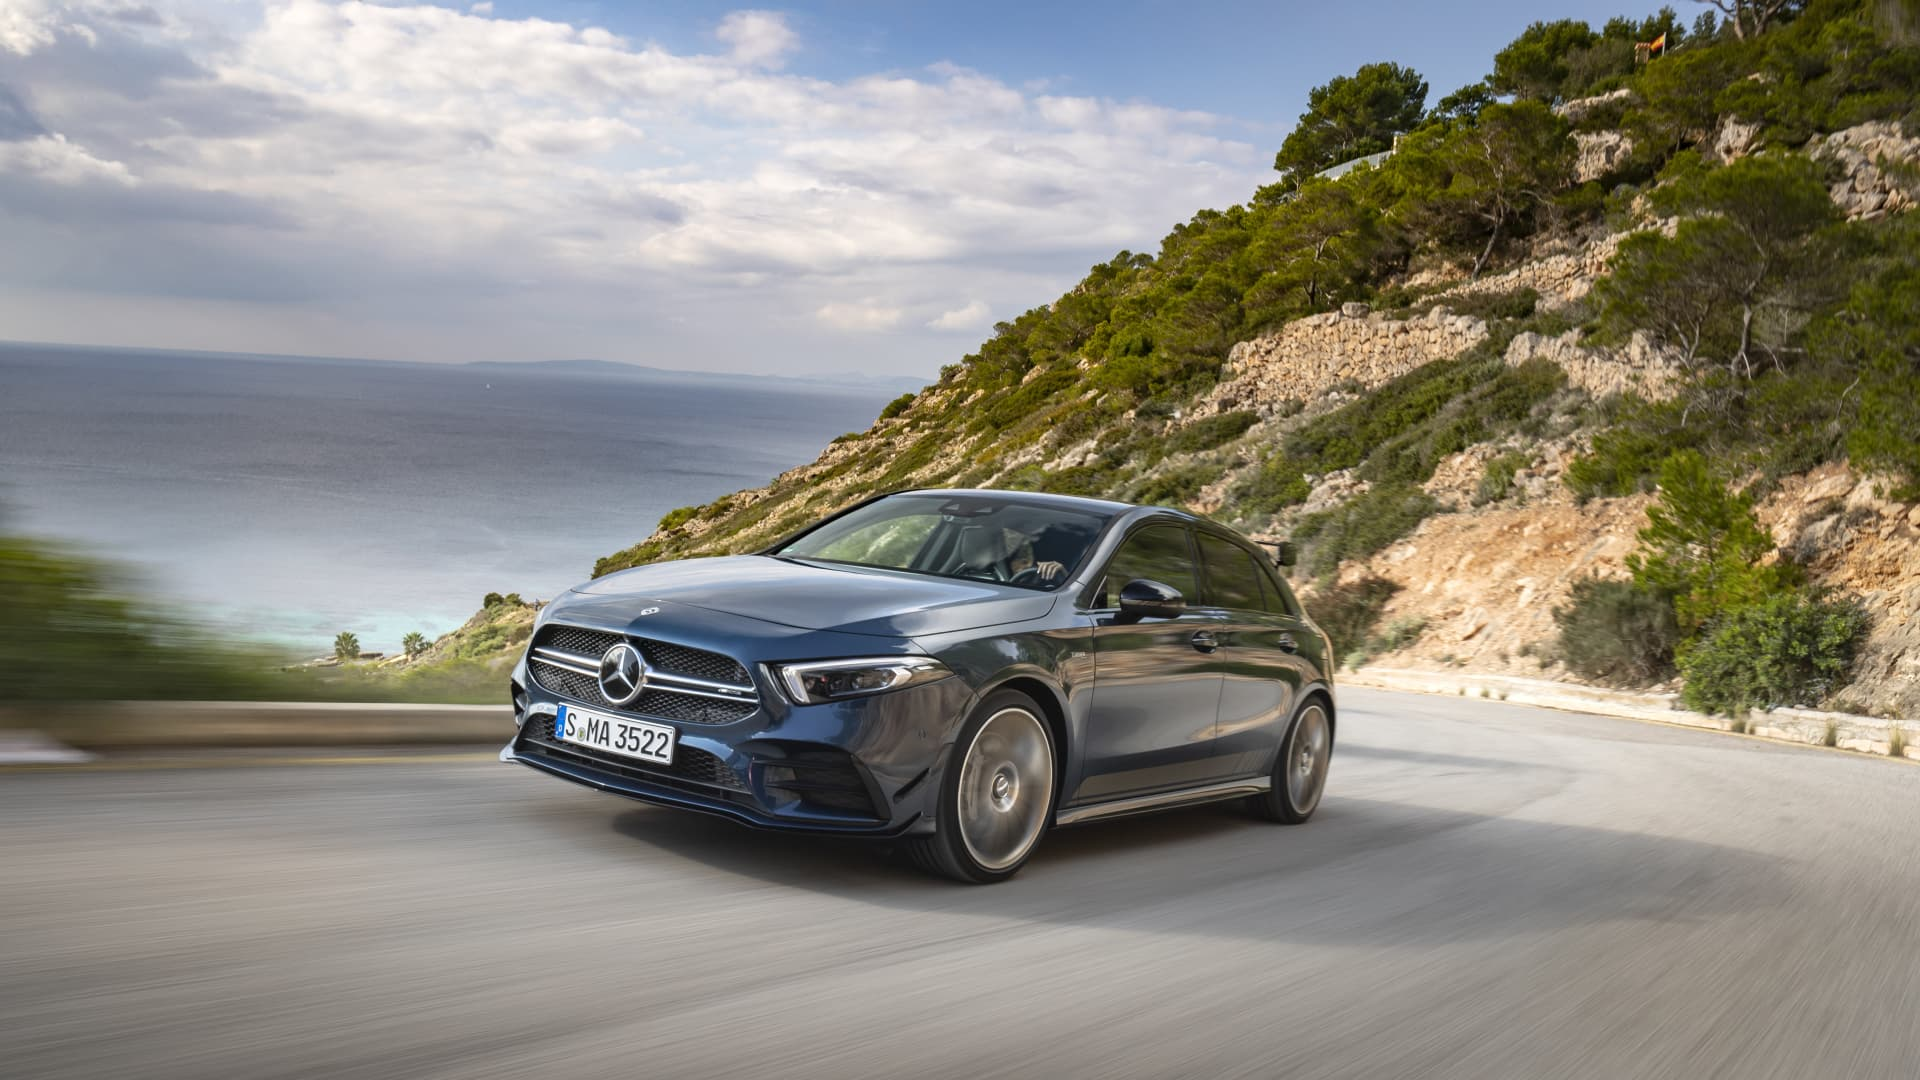 Der Neue Mercedes Amg A 35 4matic I Mallorca 2018 // The New Mercedes Amg 4matic I Mallorca 2018